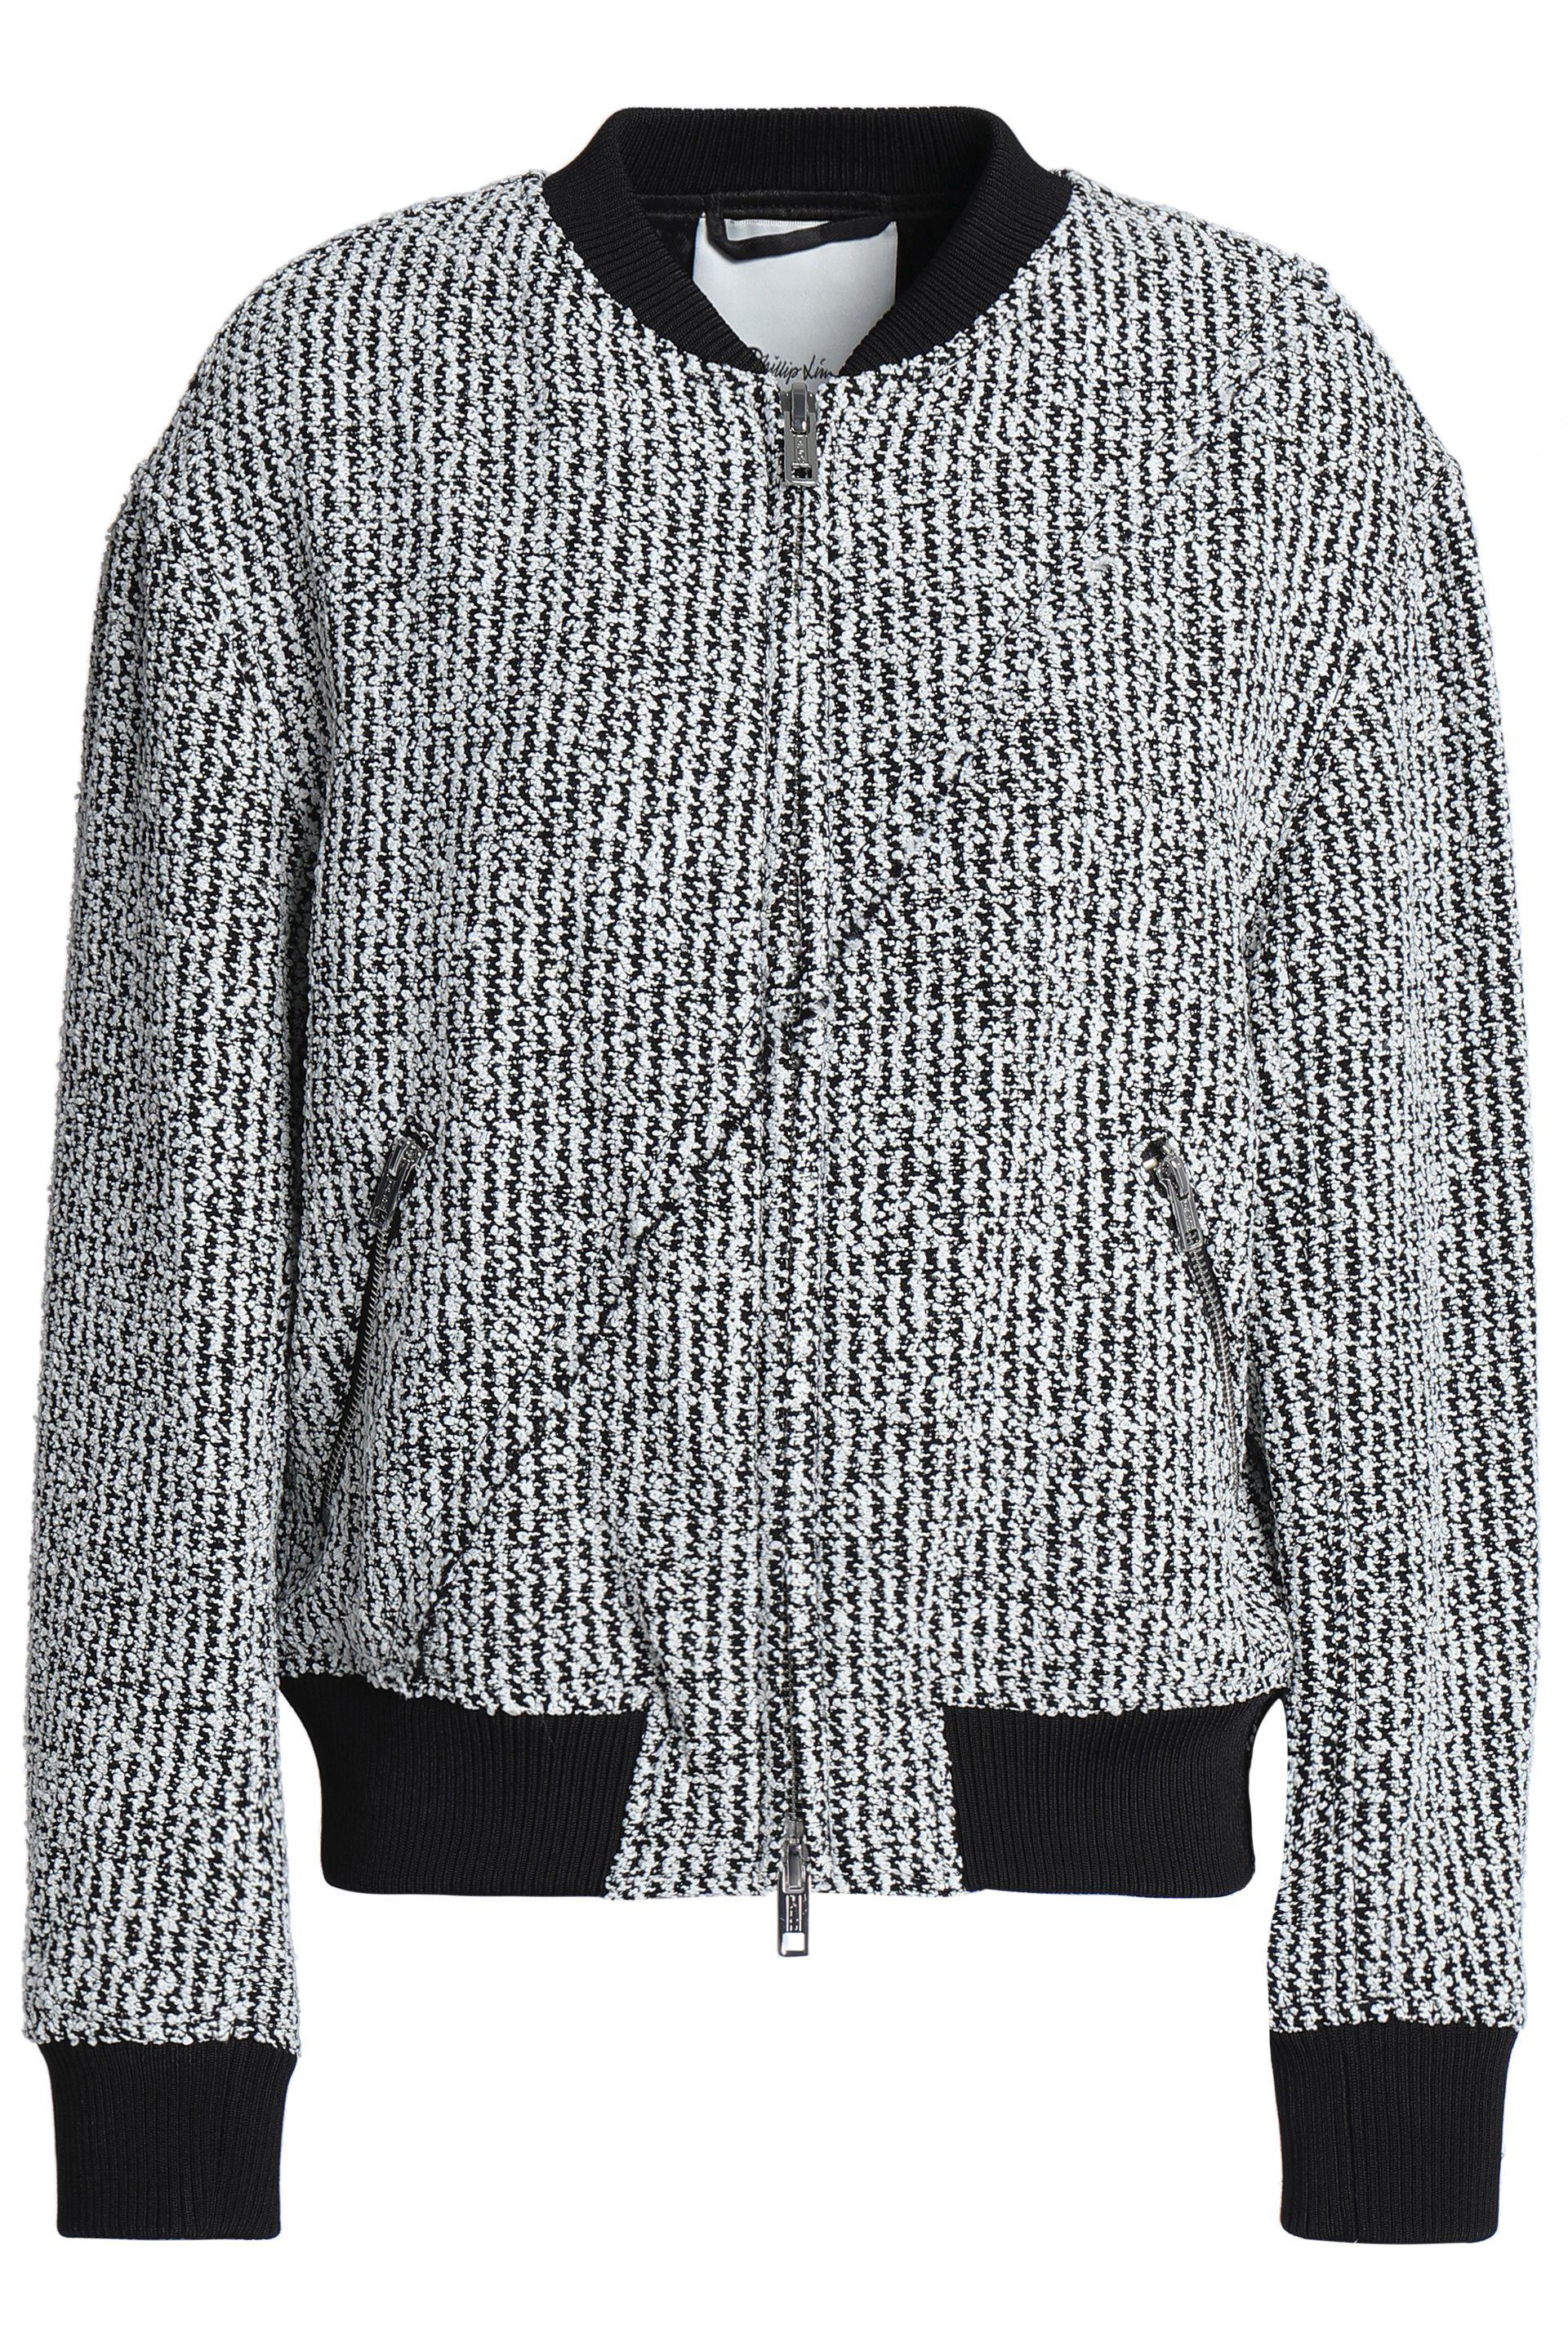 c824eeebe9 3.1 Phillip Lim Woman Bouclé-tweed Bomber Jacket Black in Black ...